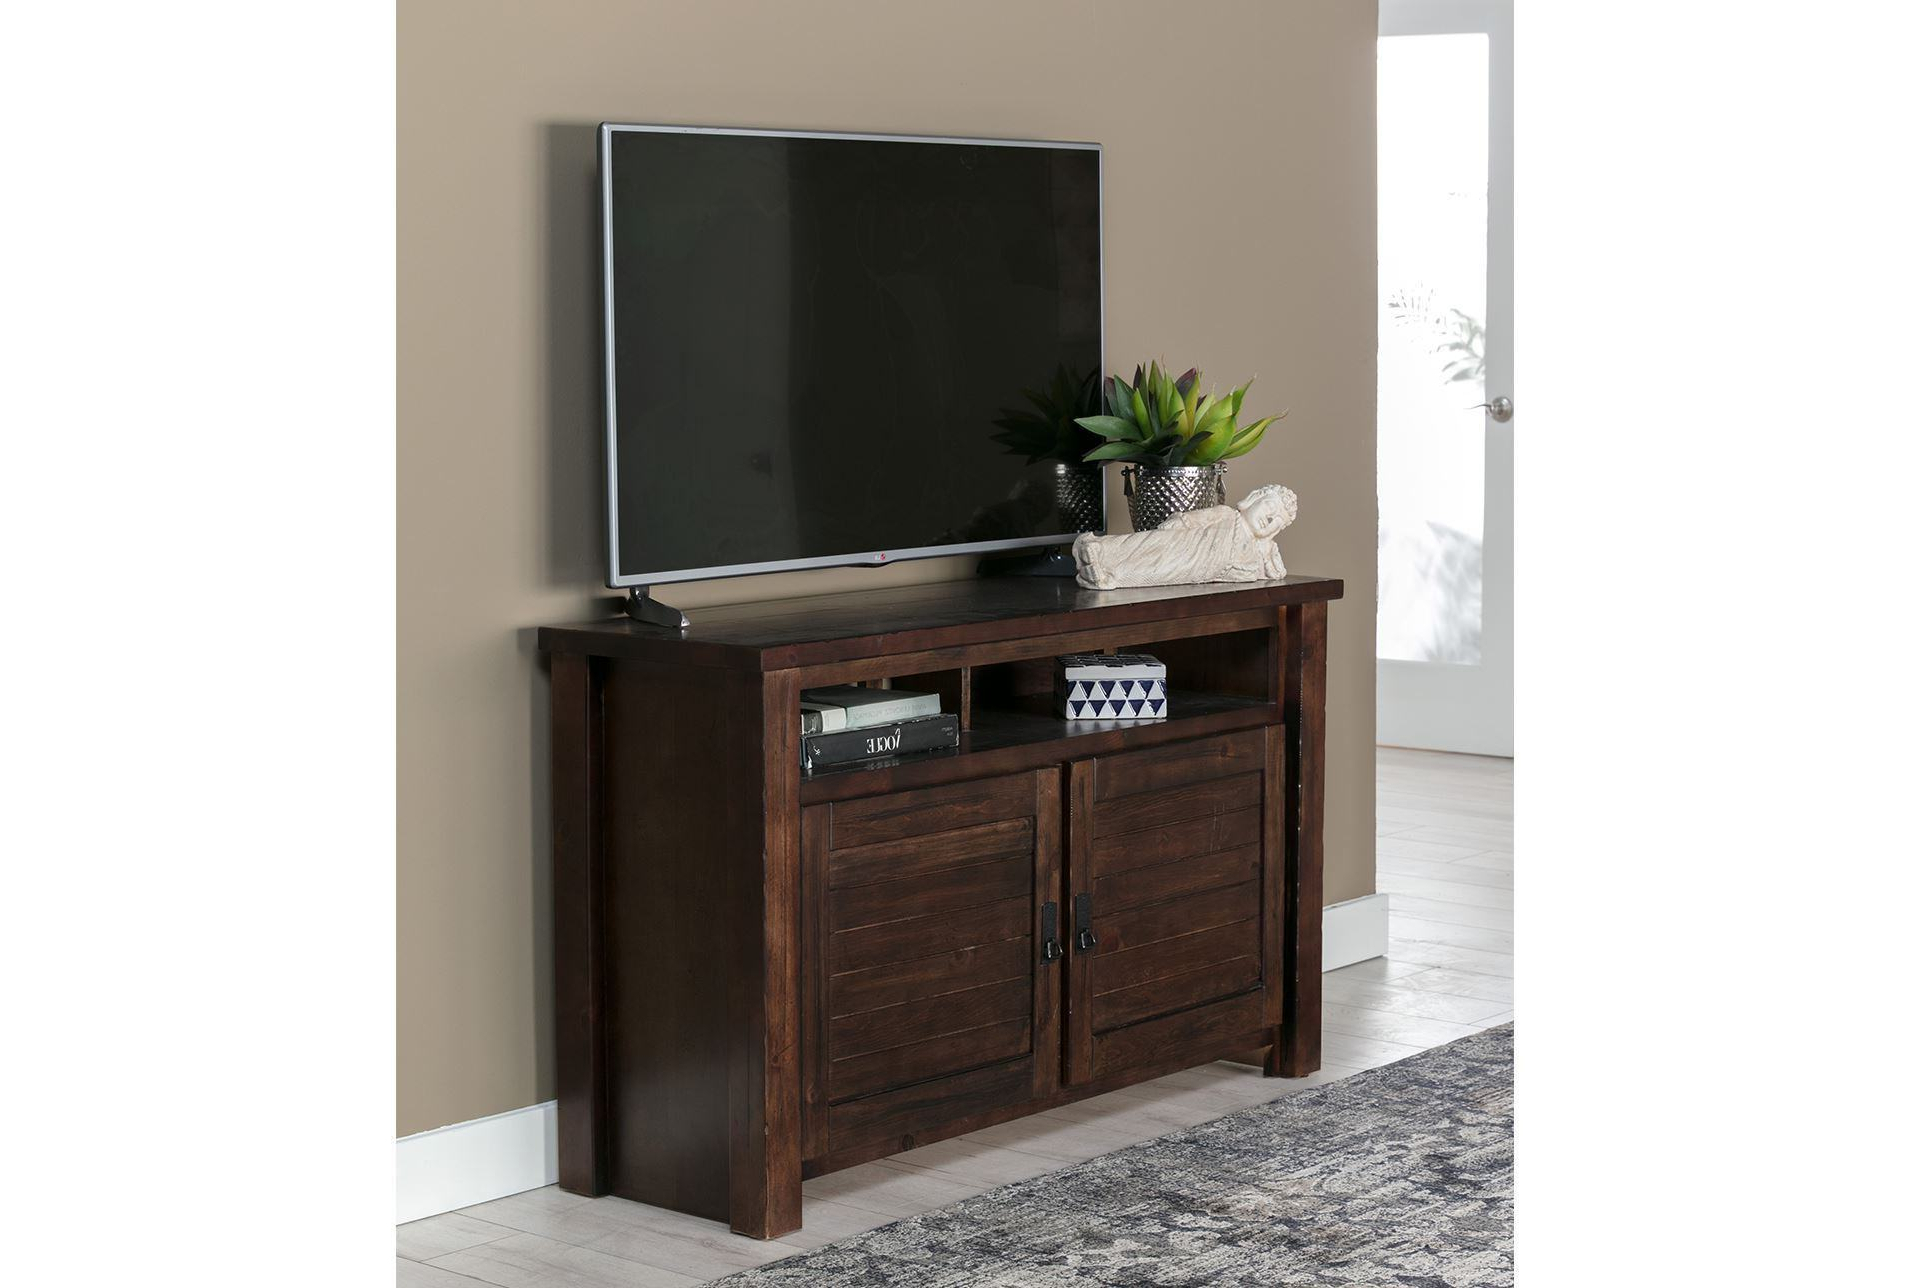 25 Creative 54 Inch Tv Stand Pictures | Cakestandlady Intended For Sinclair Blue 54 Inch Tv Stands (Gallery 12 of 20)